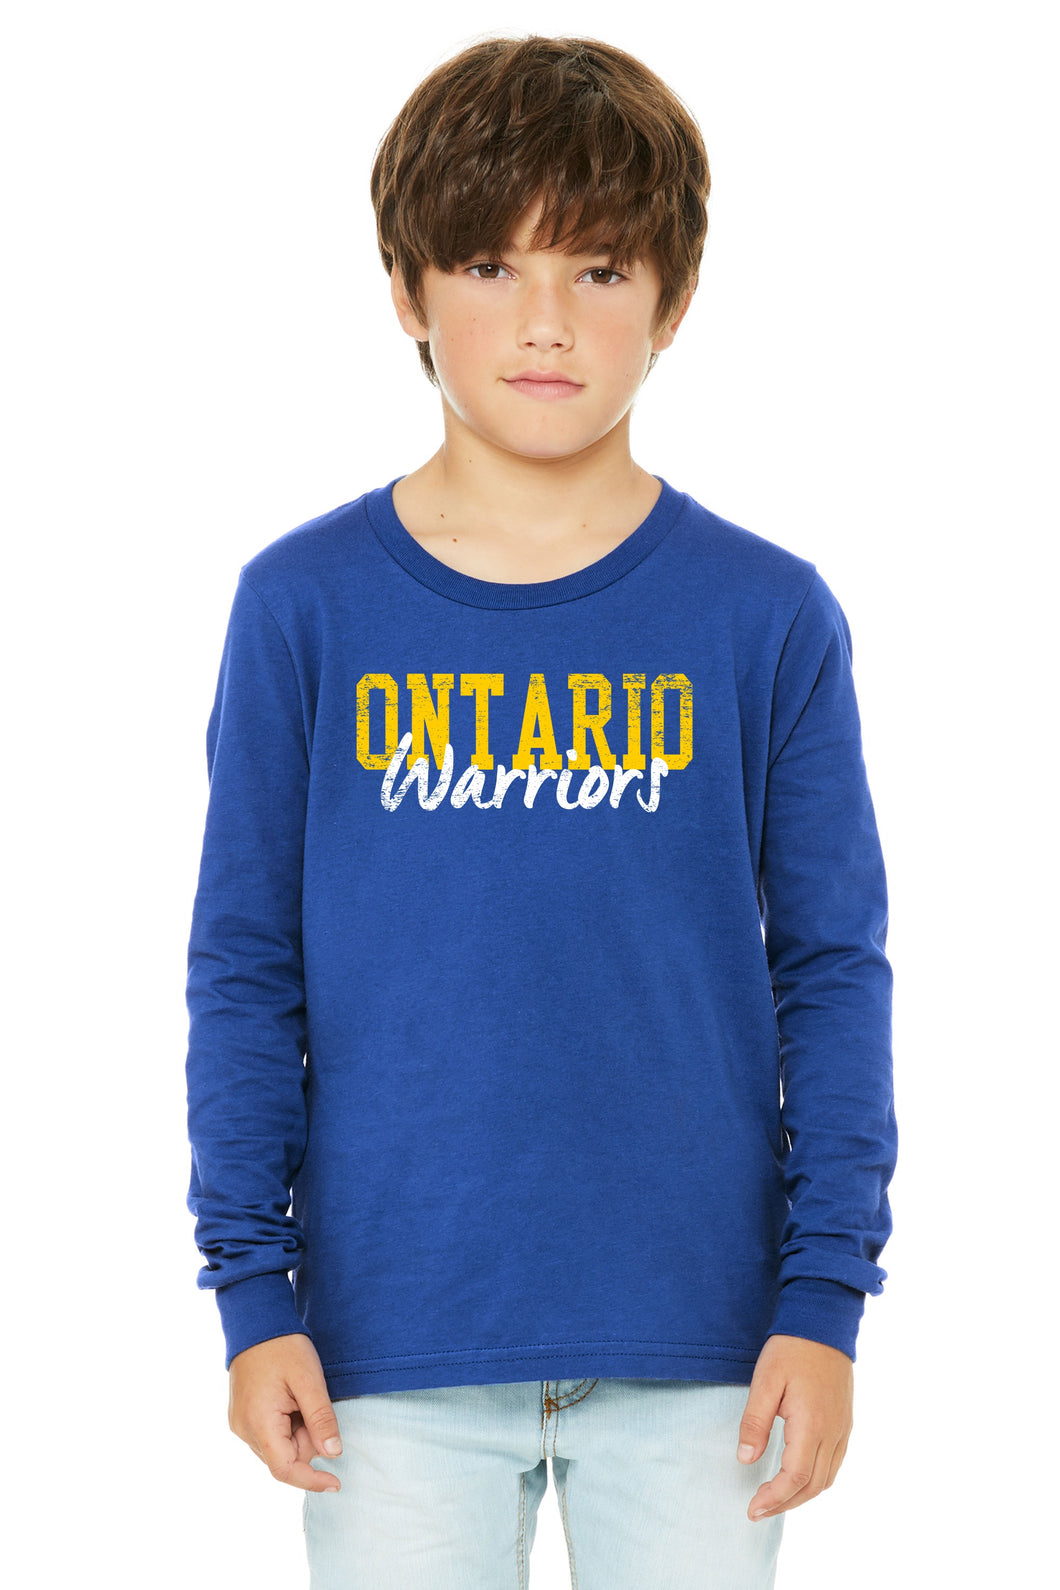 Ontario Warriors Long Sleeved Youth